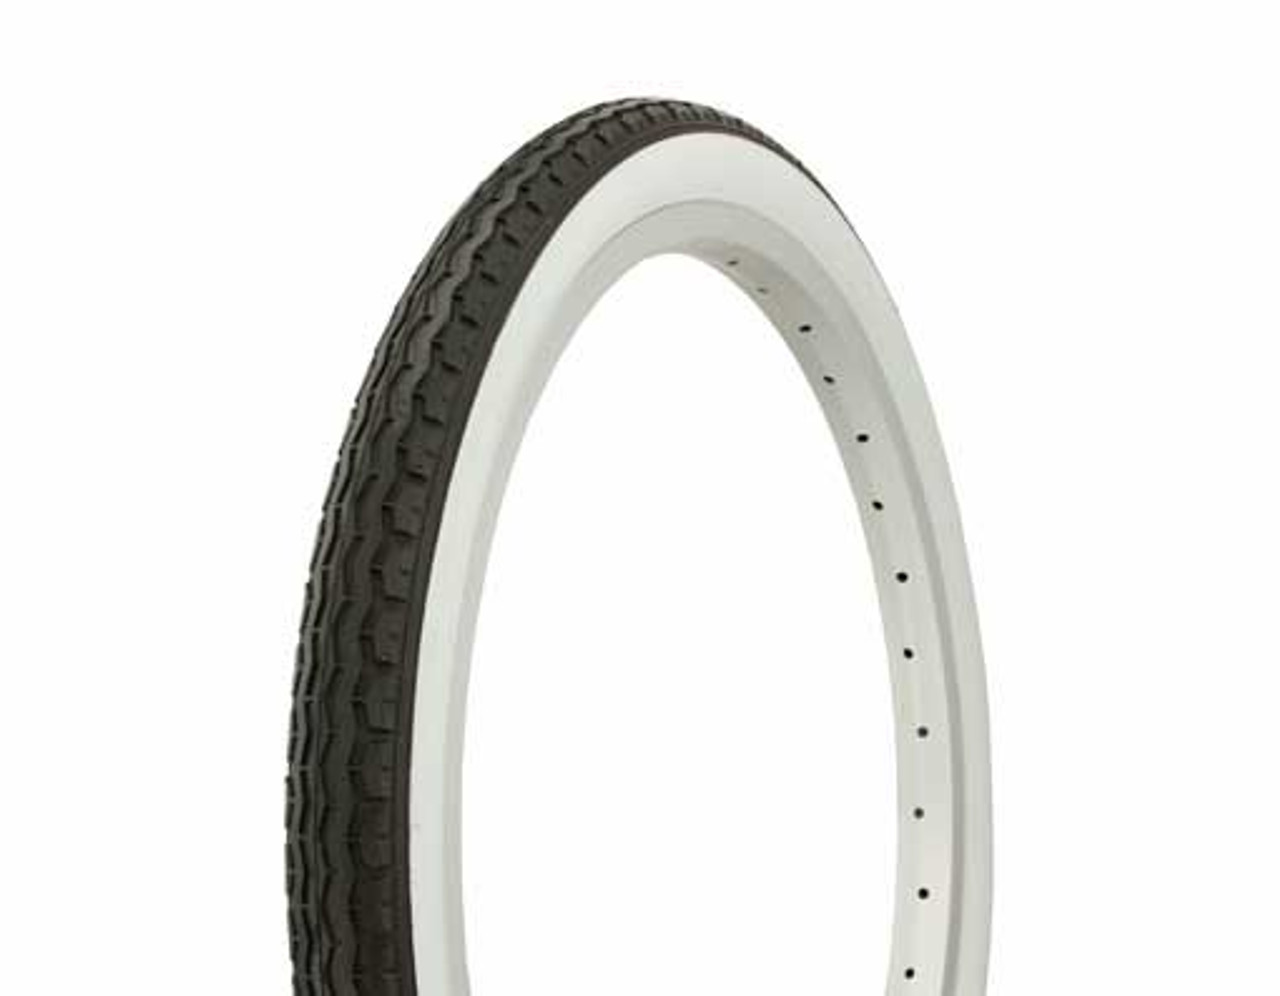 Duro White Wall Hf 160a 20 Black Lowrider White Wall Tires Duro